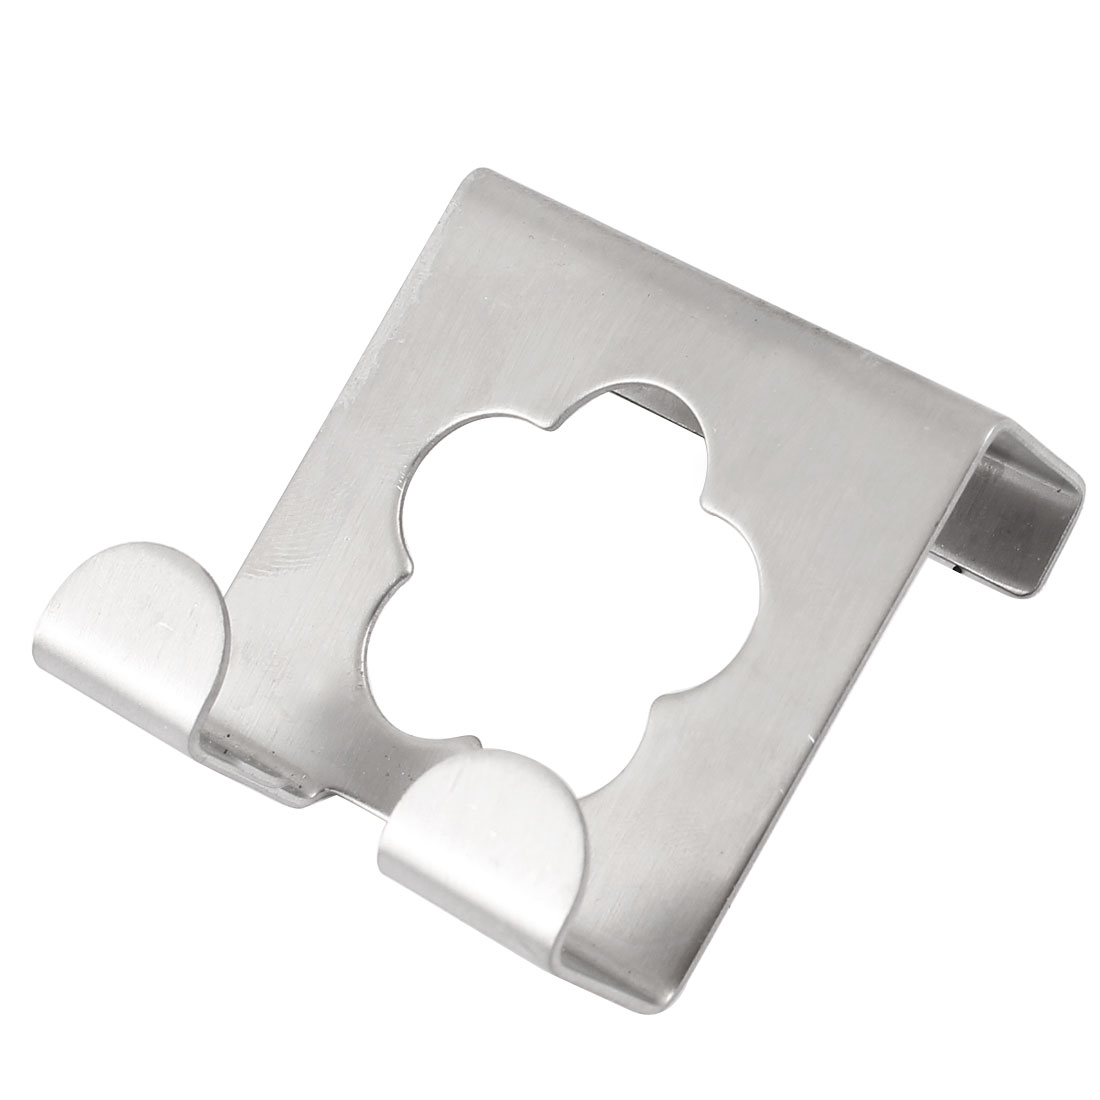 Stainless Steel Hollowed Over Top Edge Wardrobe Door Hook Hanger